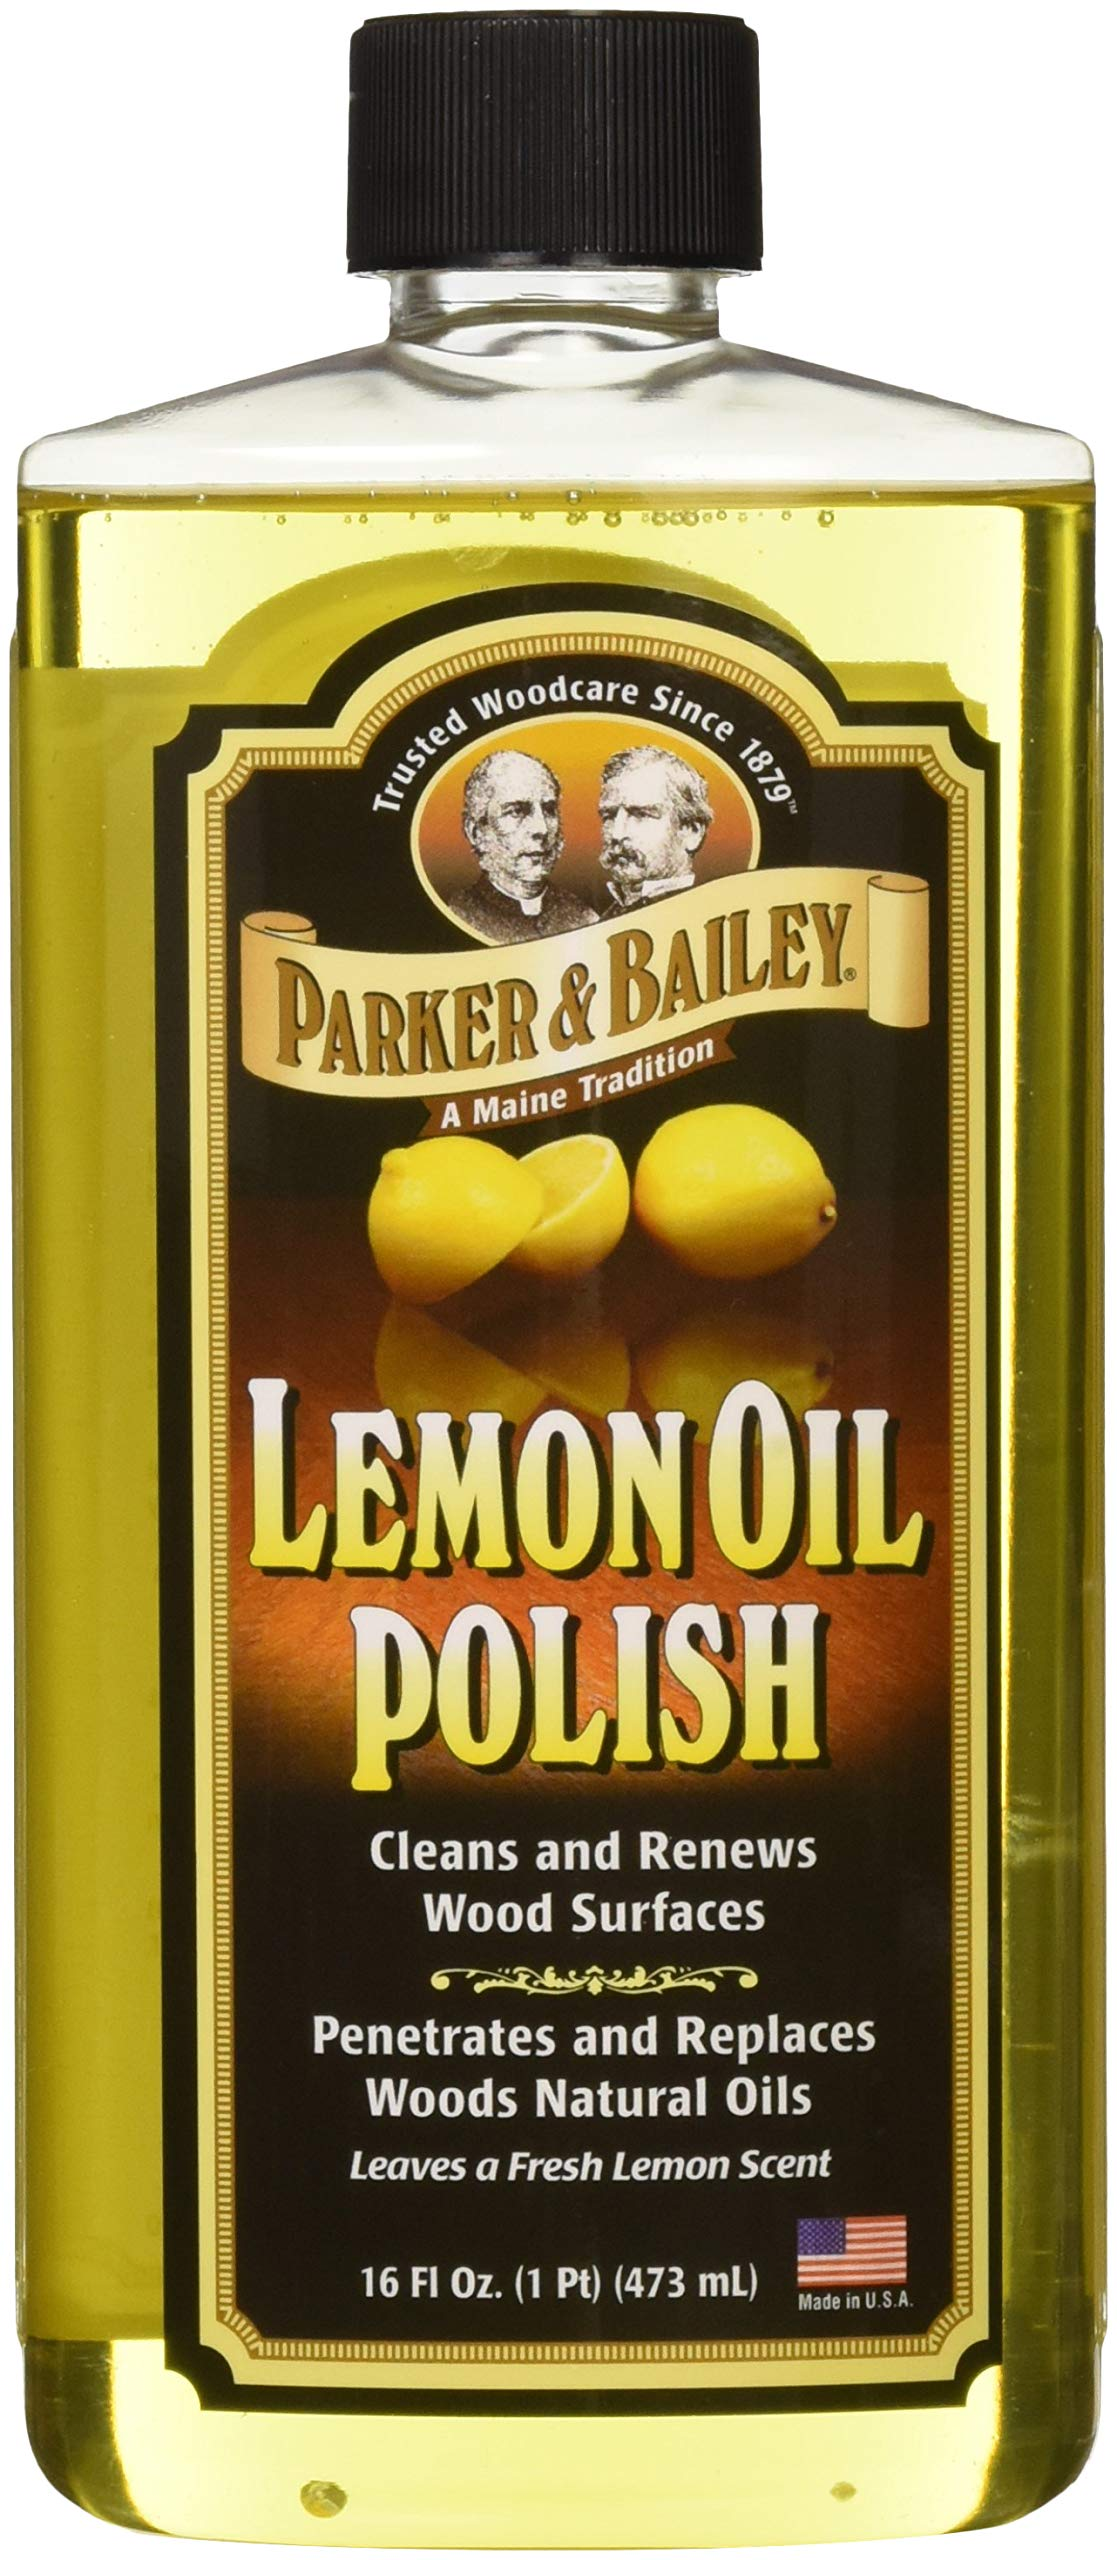 Parker & Bailey Natural Lemon Oil Polish 16oz by Parker & Bailey